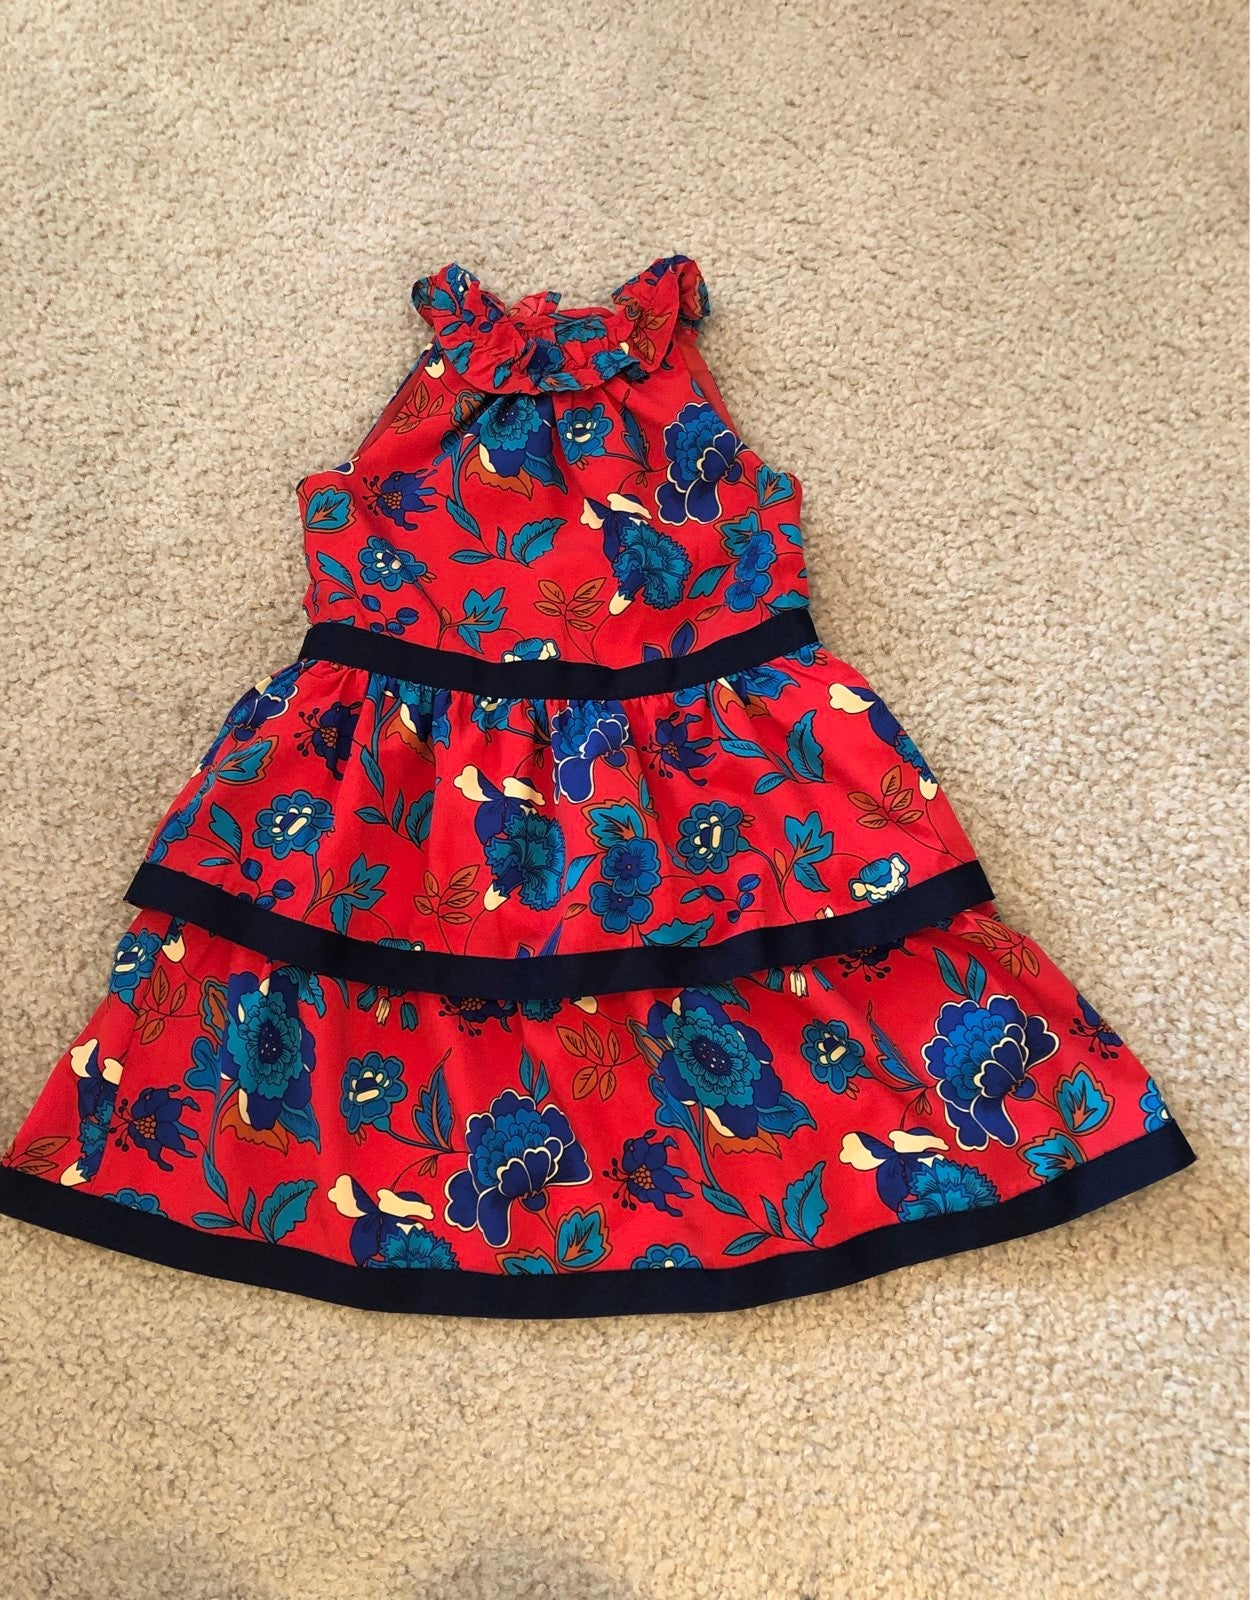 Janie and Jack red floral dress Size 2T